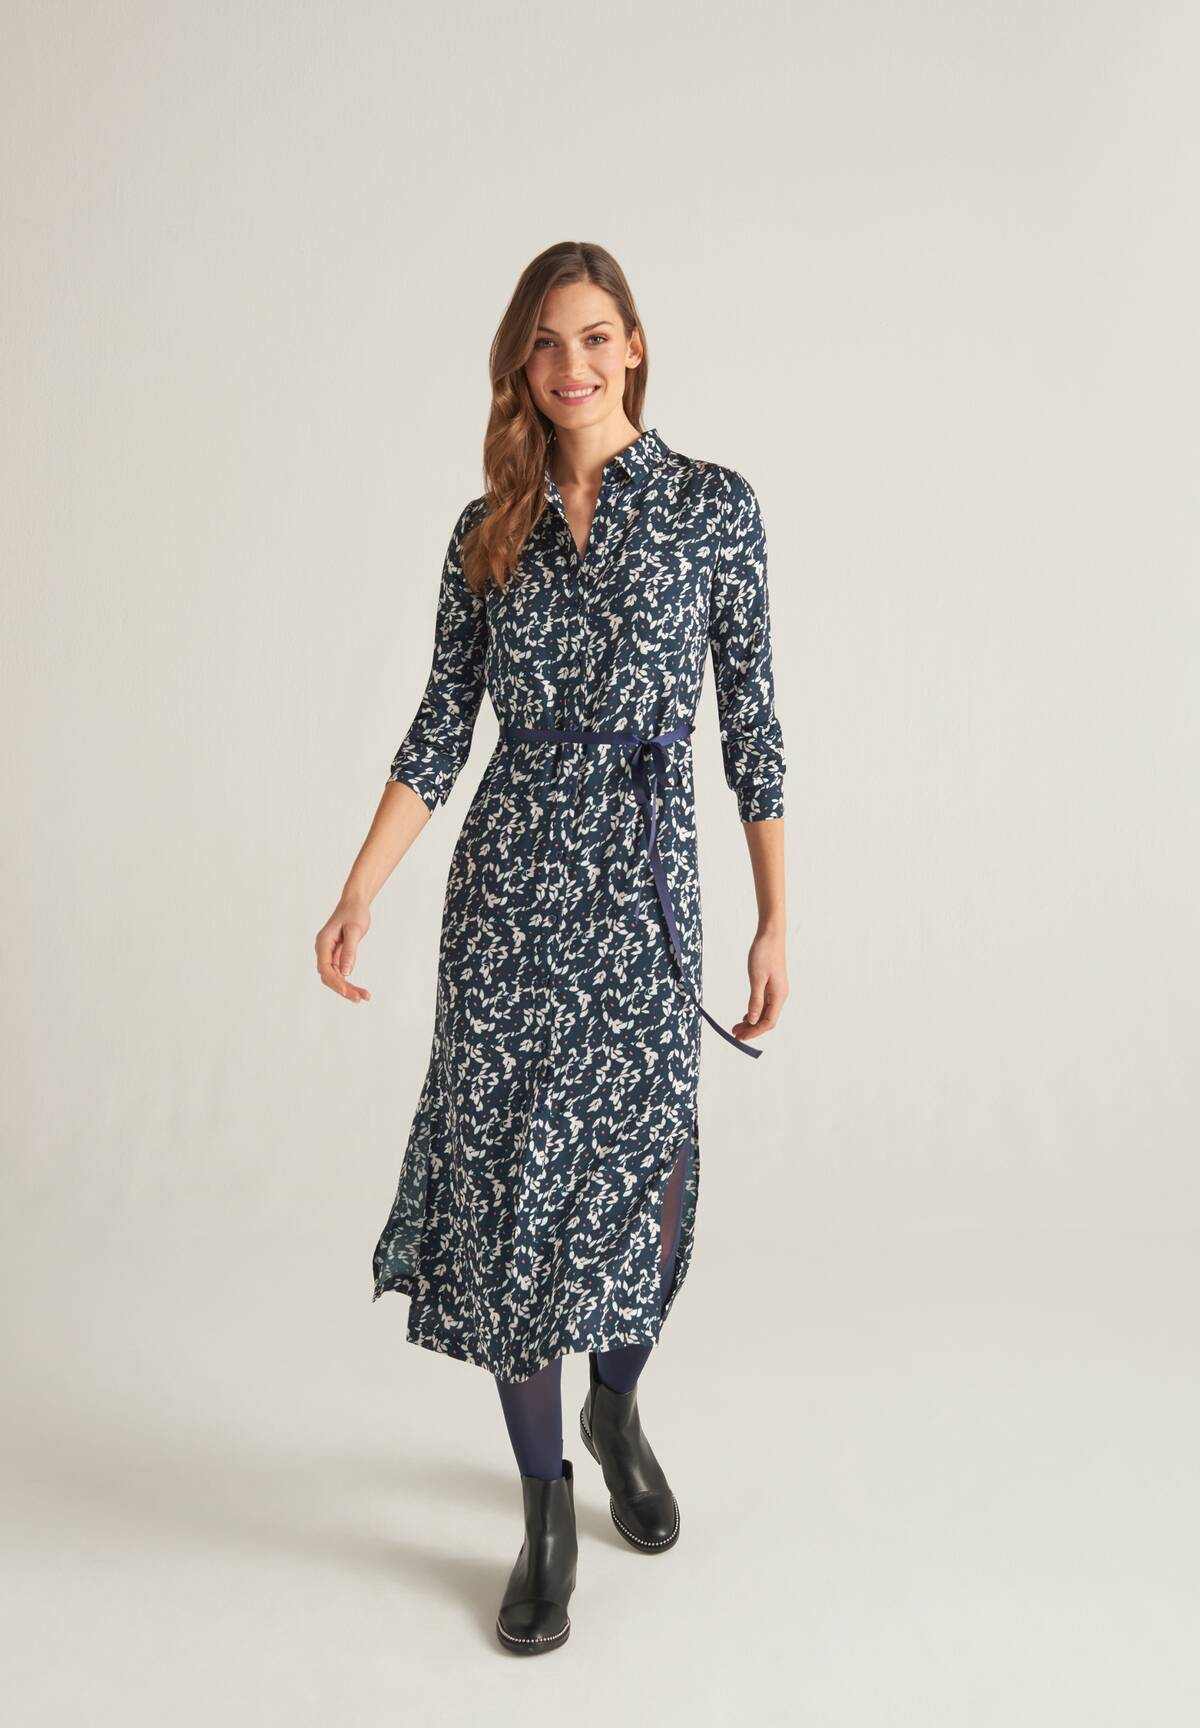 Trendiges Kleid mit Print / Dress